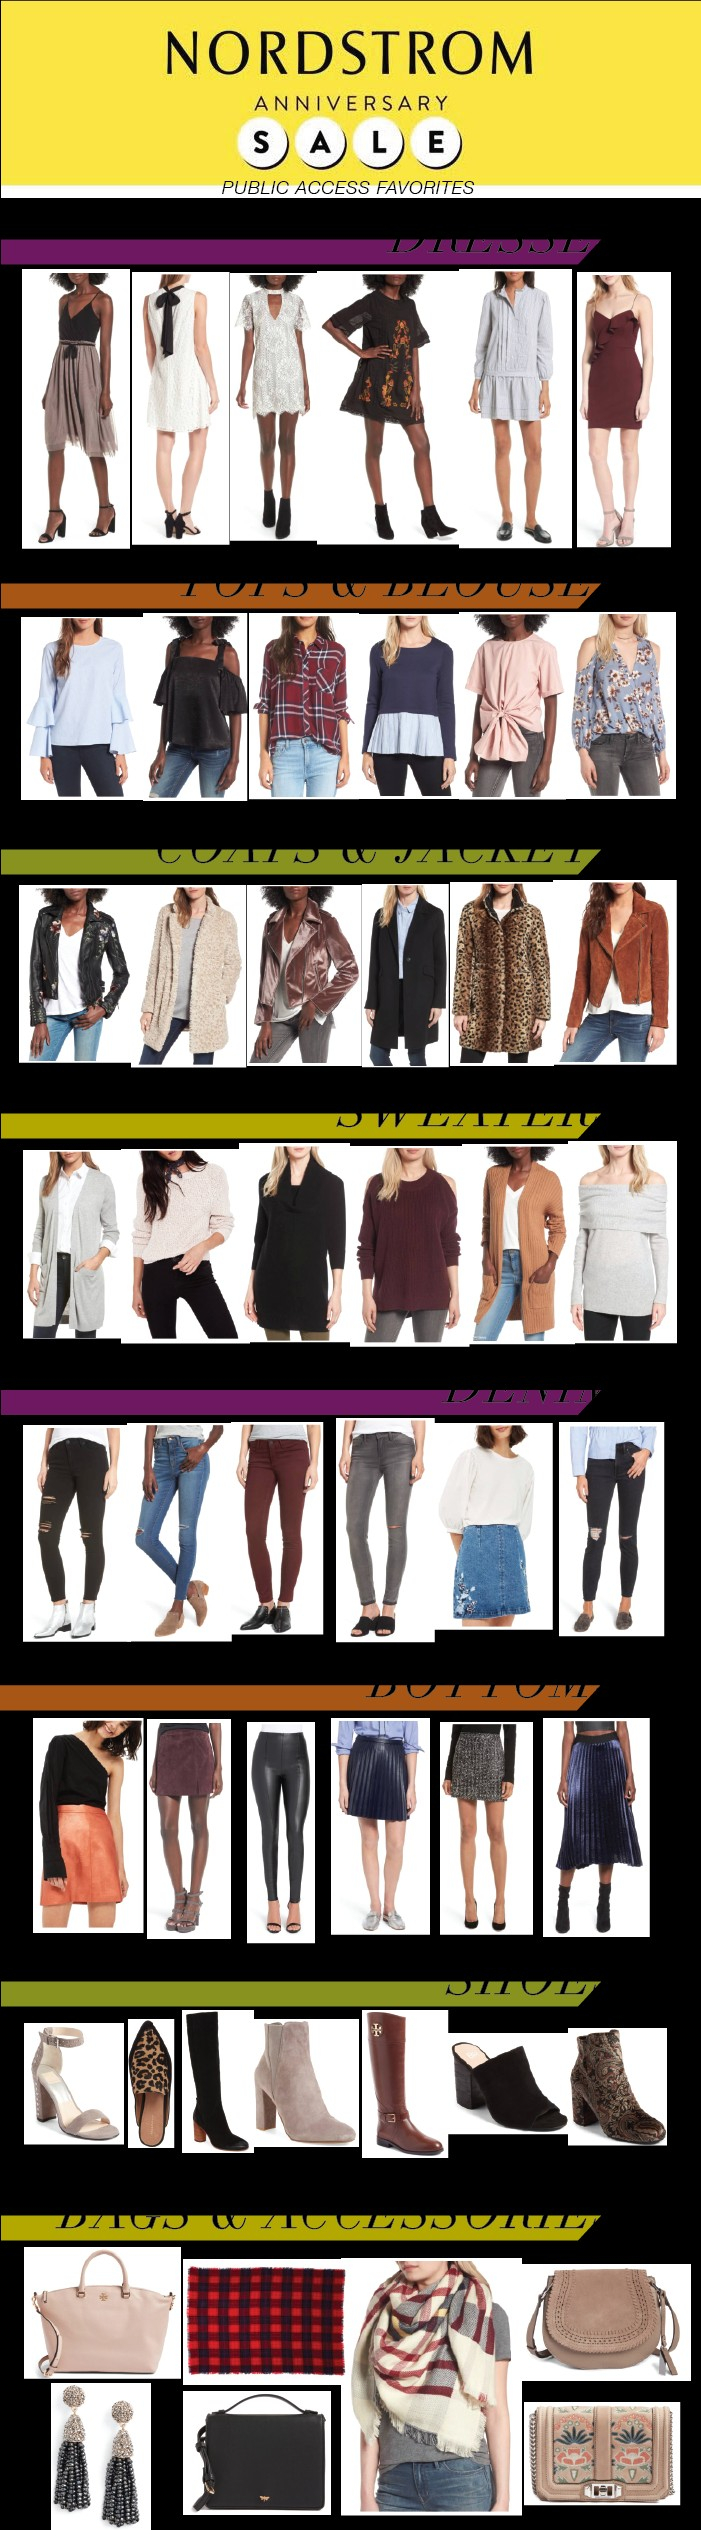 Nordstrom Anniversary Sale Public Access Favorites